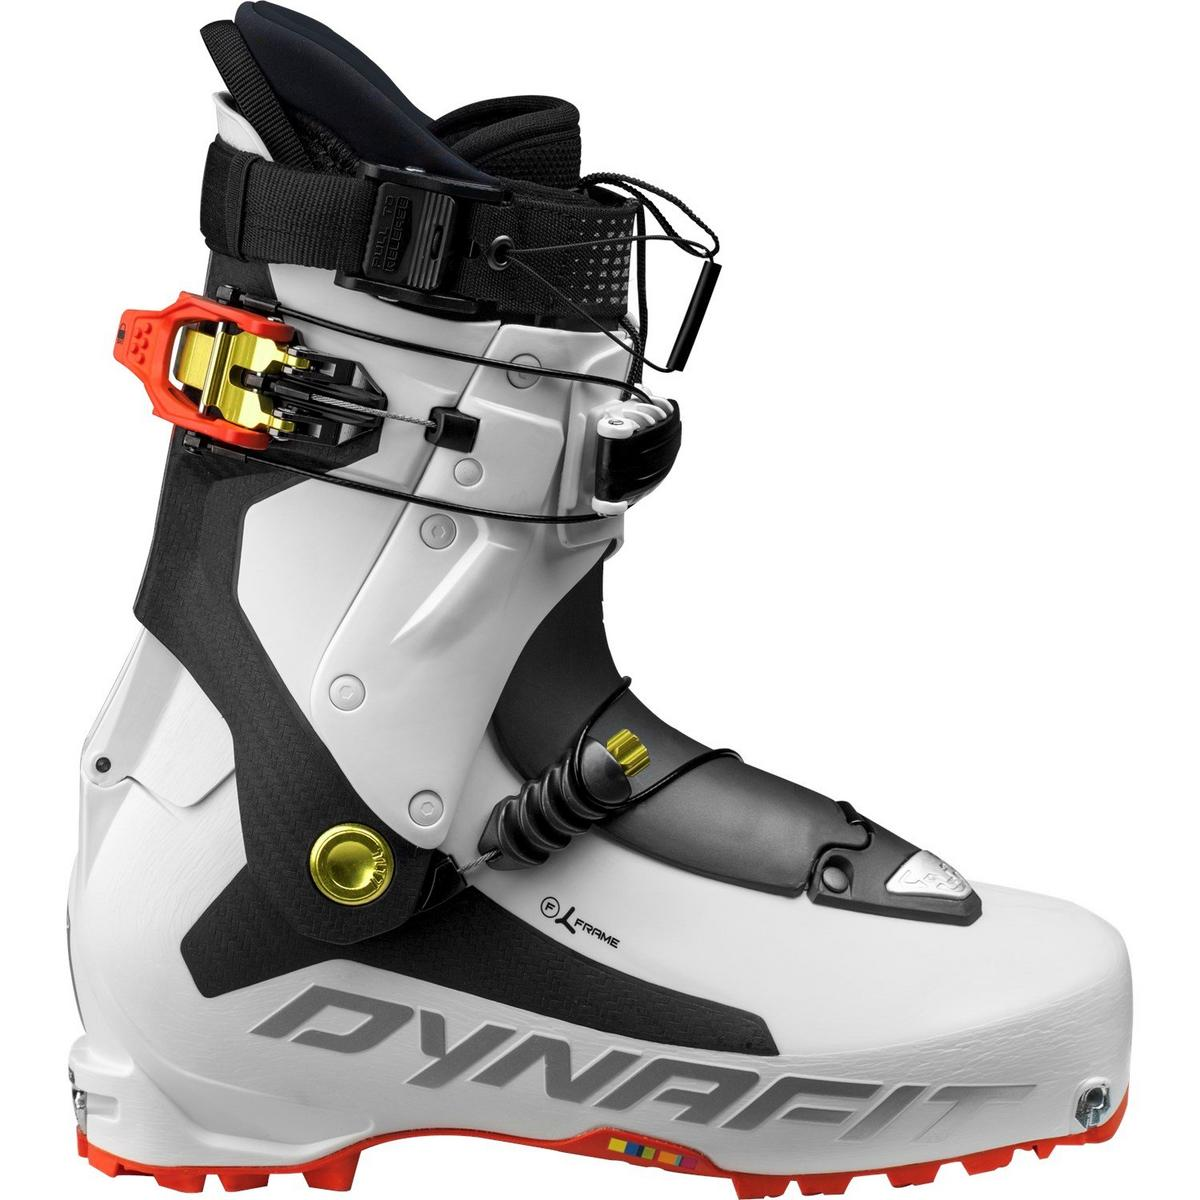 Dynafit Men's Tlt 7 Expedition CR Touring Boot - White